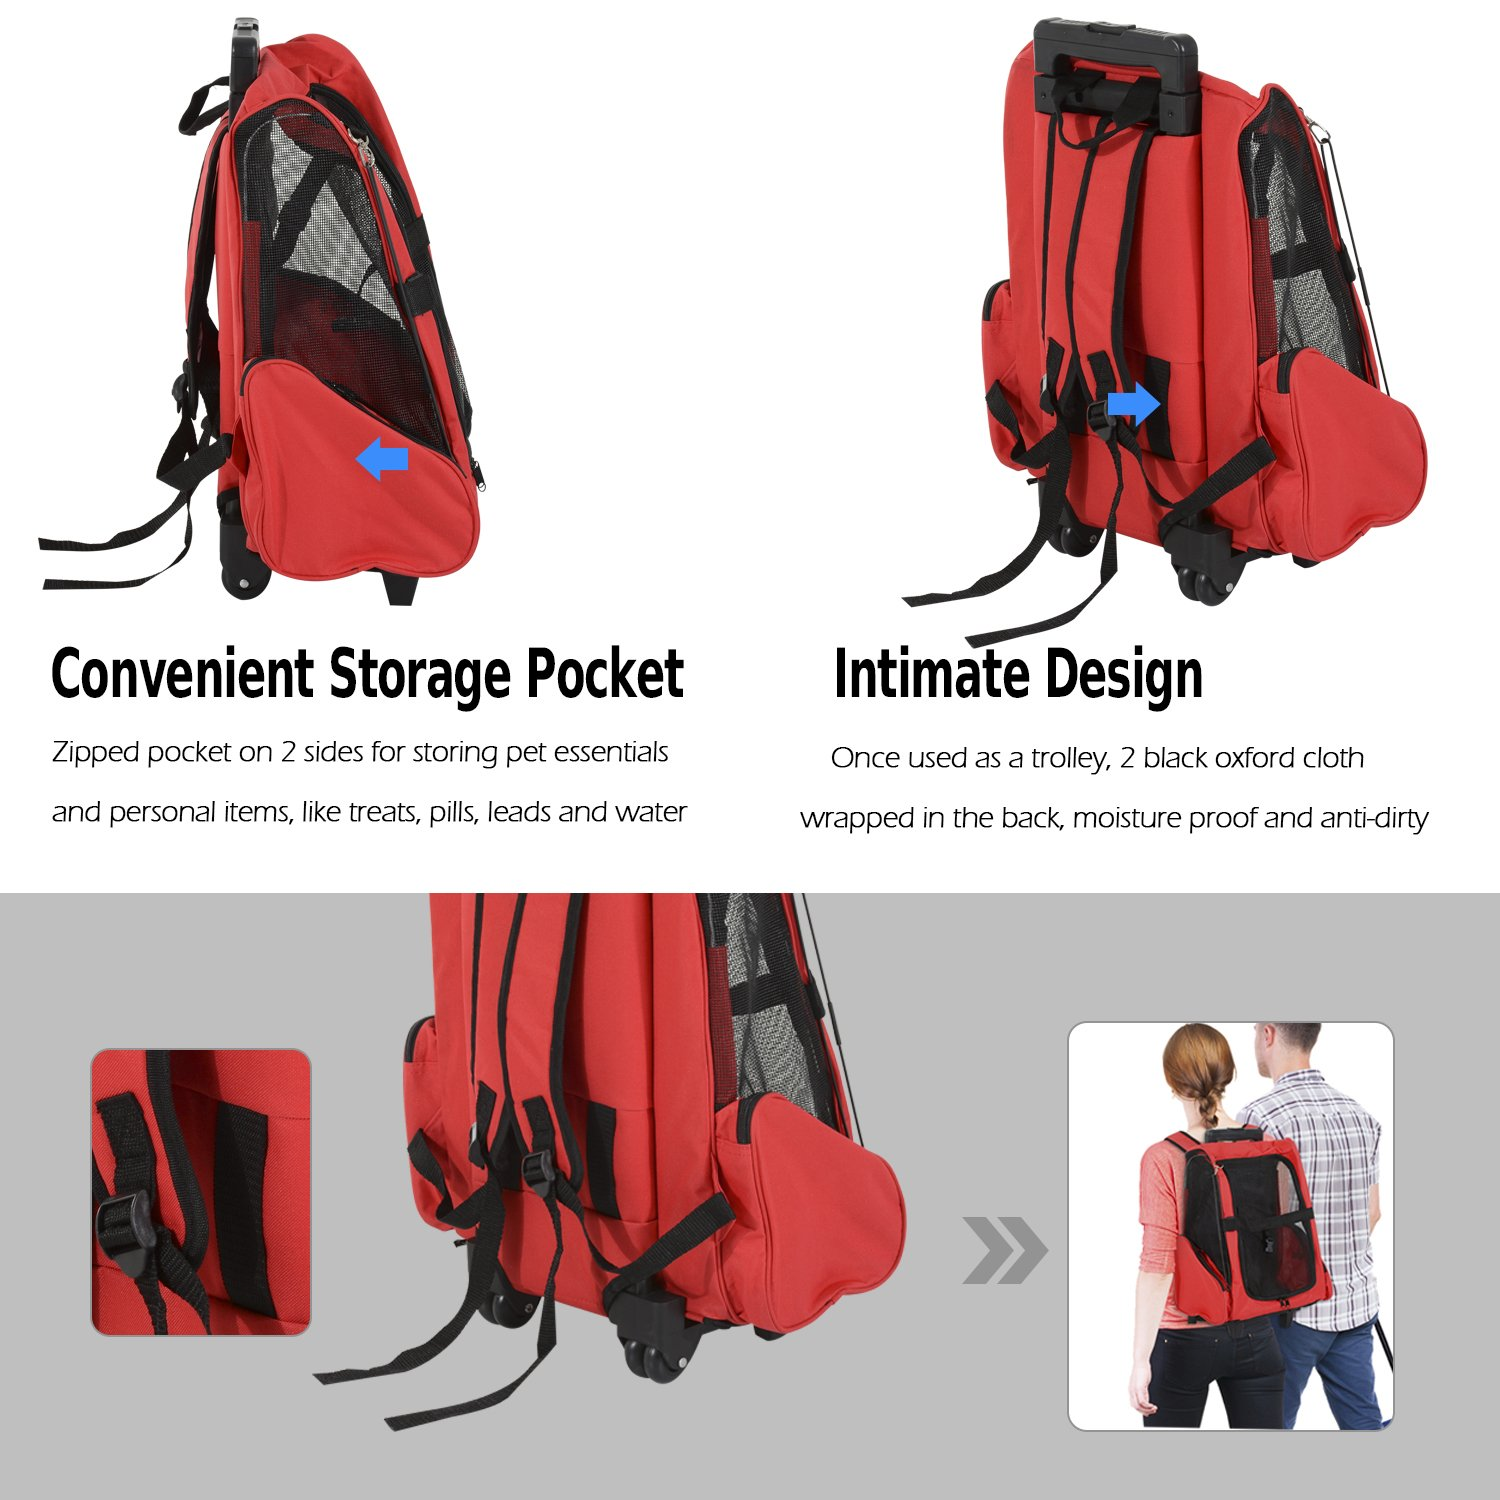 4c20282320cd Pawhut Pet Travel Backpack Bag Cat Puppy Dog Carrier w Trolley and  Telescopic Handle Portable Stroller Wheel Luggage Bag (Red)  Amazon.co.uk   Pet Supplies